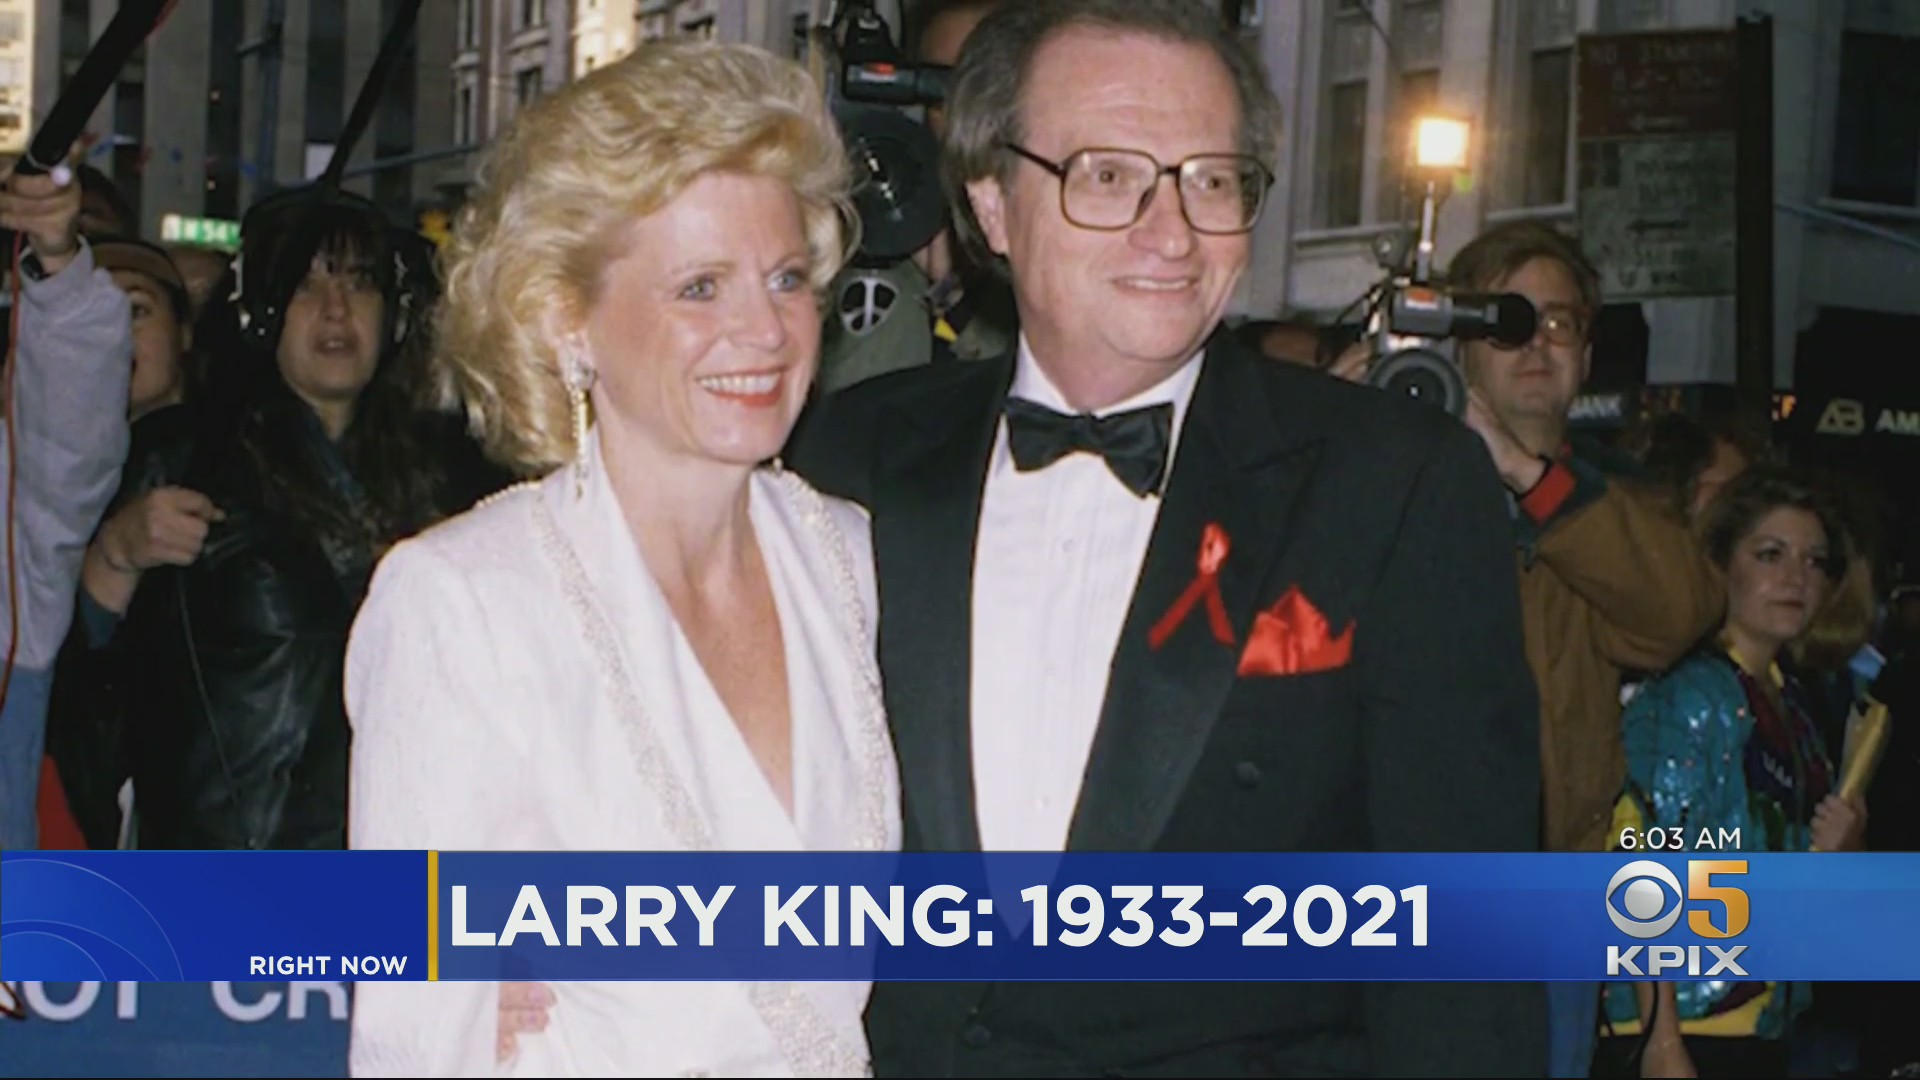 news.yahoo.com: LARRY KING DIES: Celebrated Talk Show Host Larry King Dies While Battling COVID-19 At Los Angeles Hospital